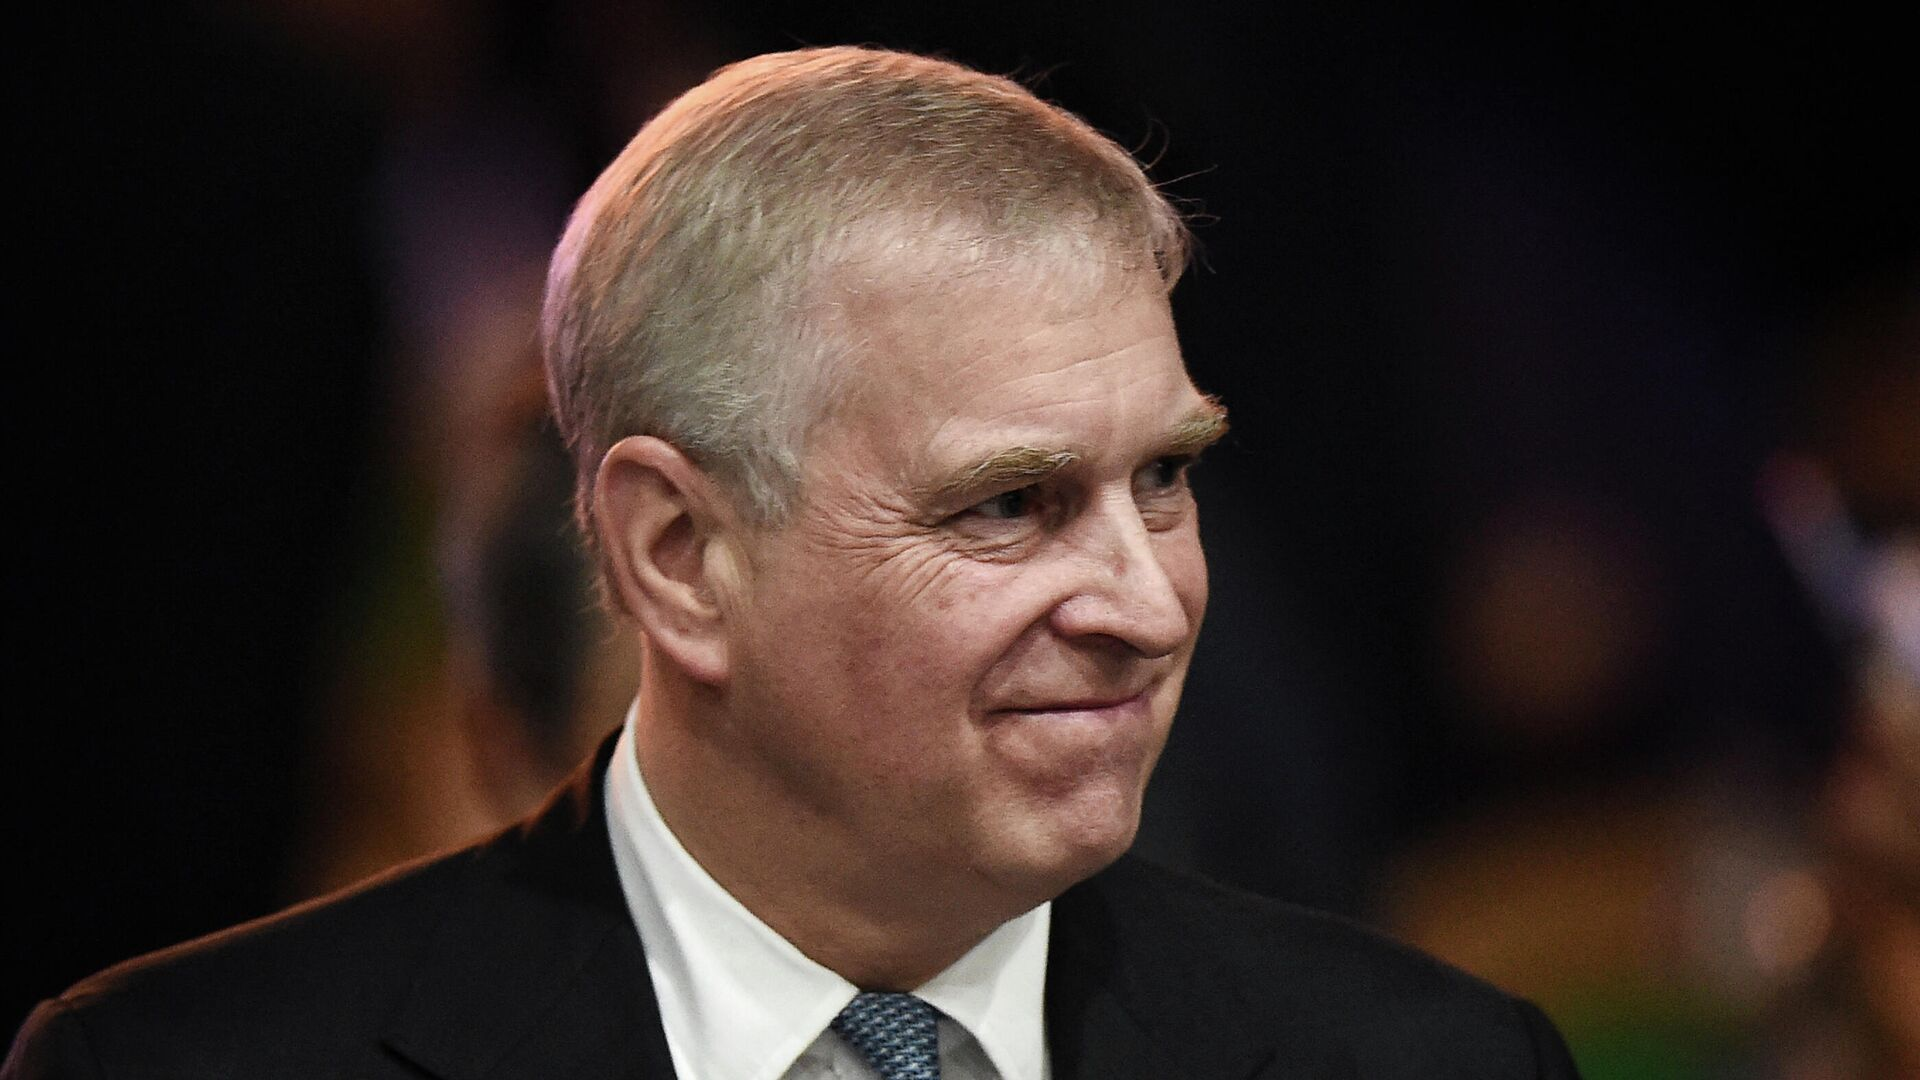 Britain's Prince Andrew, Duke of York leaves after speaking at the ASEAN Business and Investment Summit in Bangkok on November 3, 2019 - Sputnik International, 1920, 27.09.2021